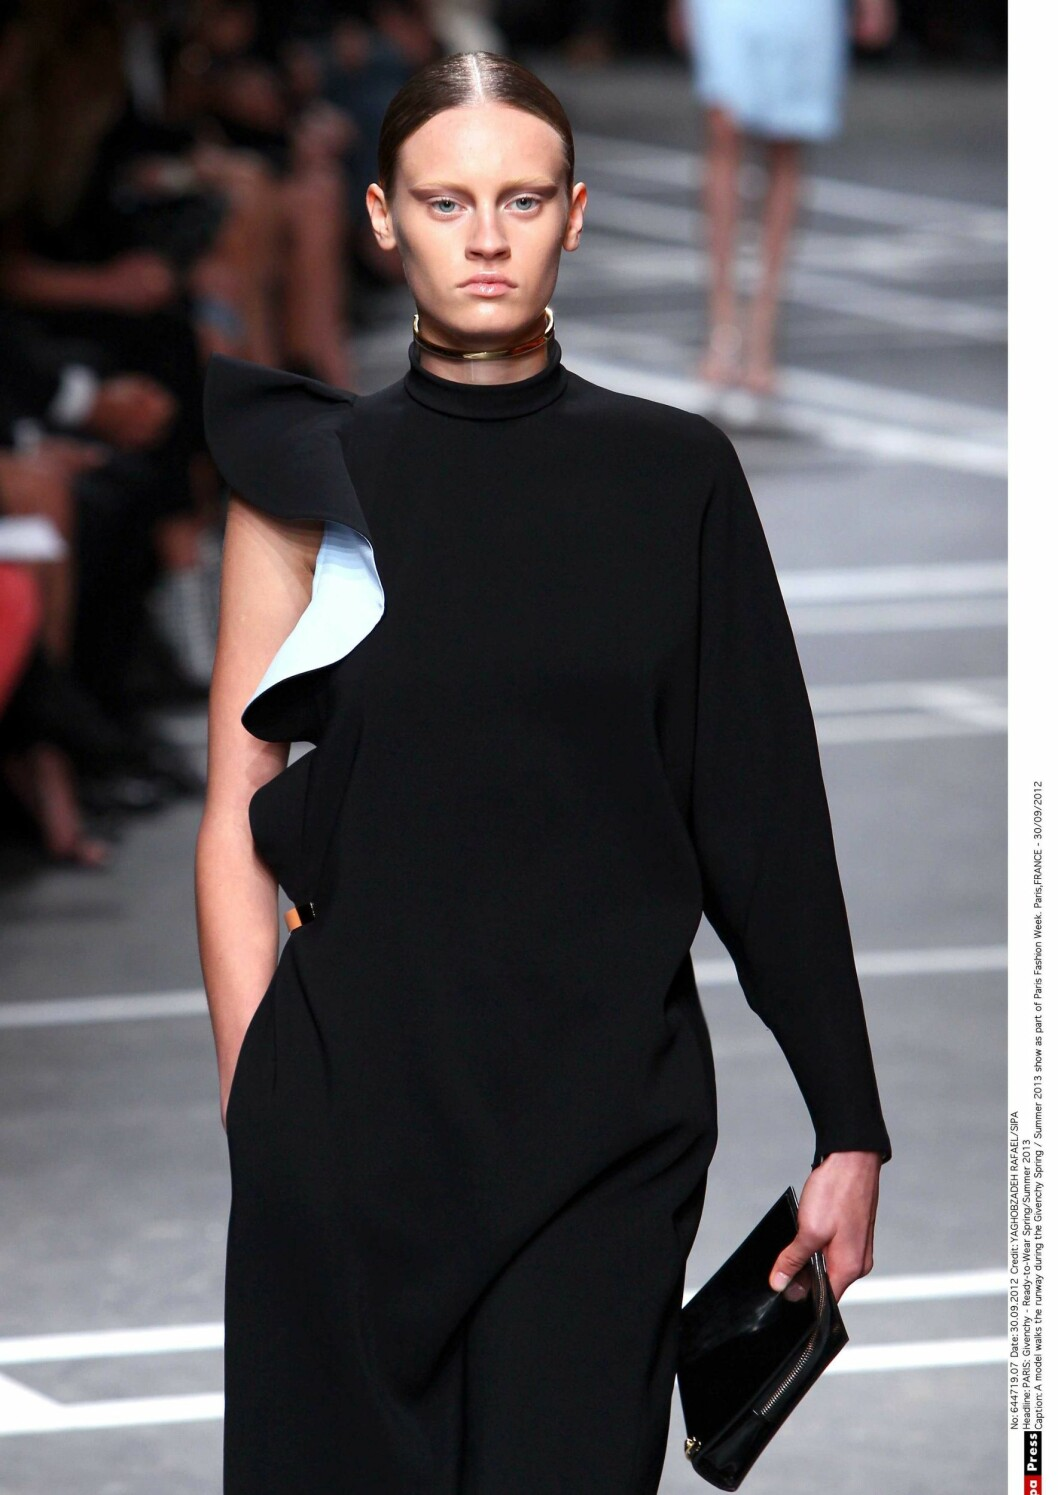 Givenchy SS13 Foto: All Over Press